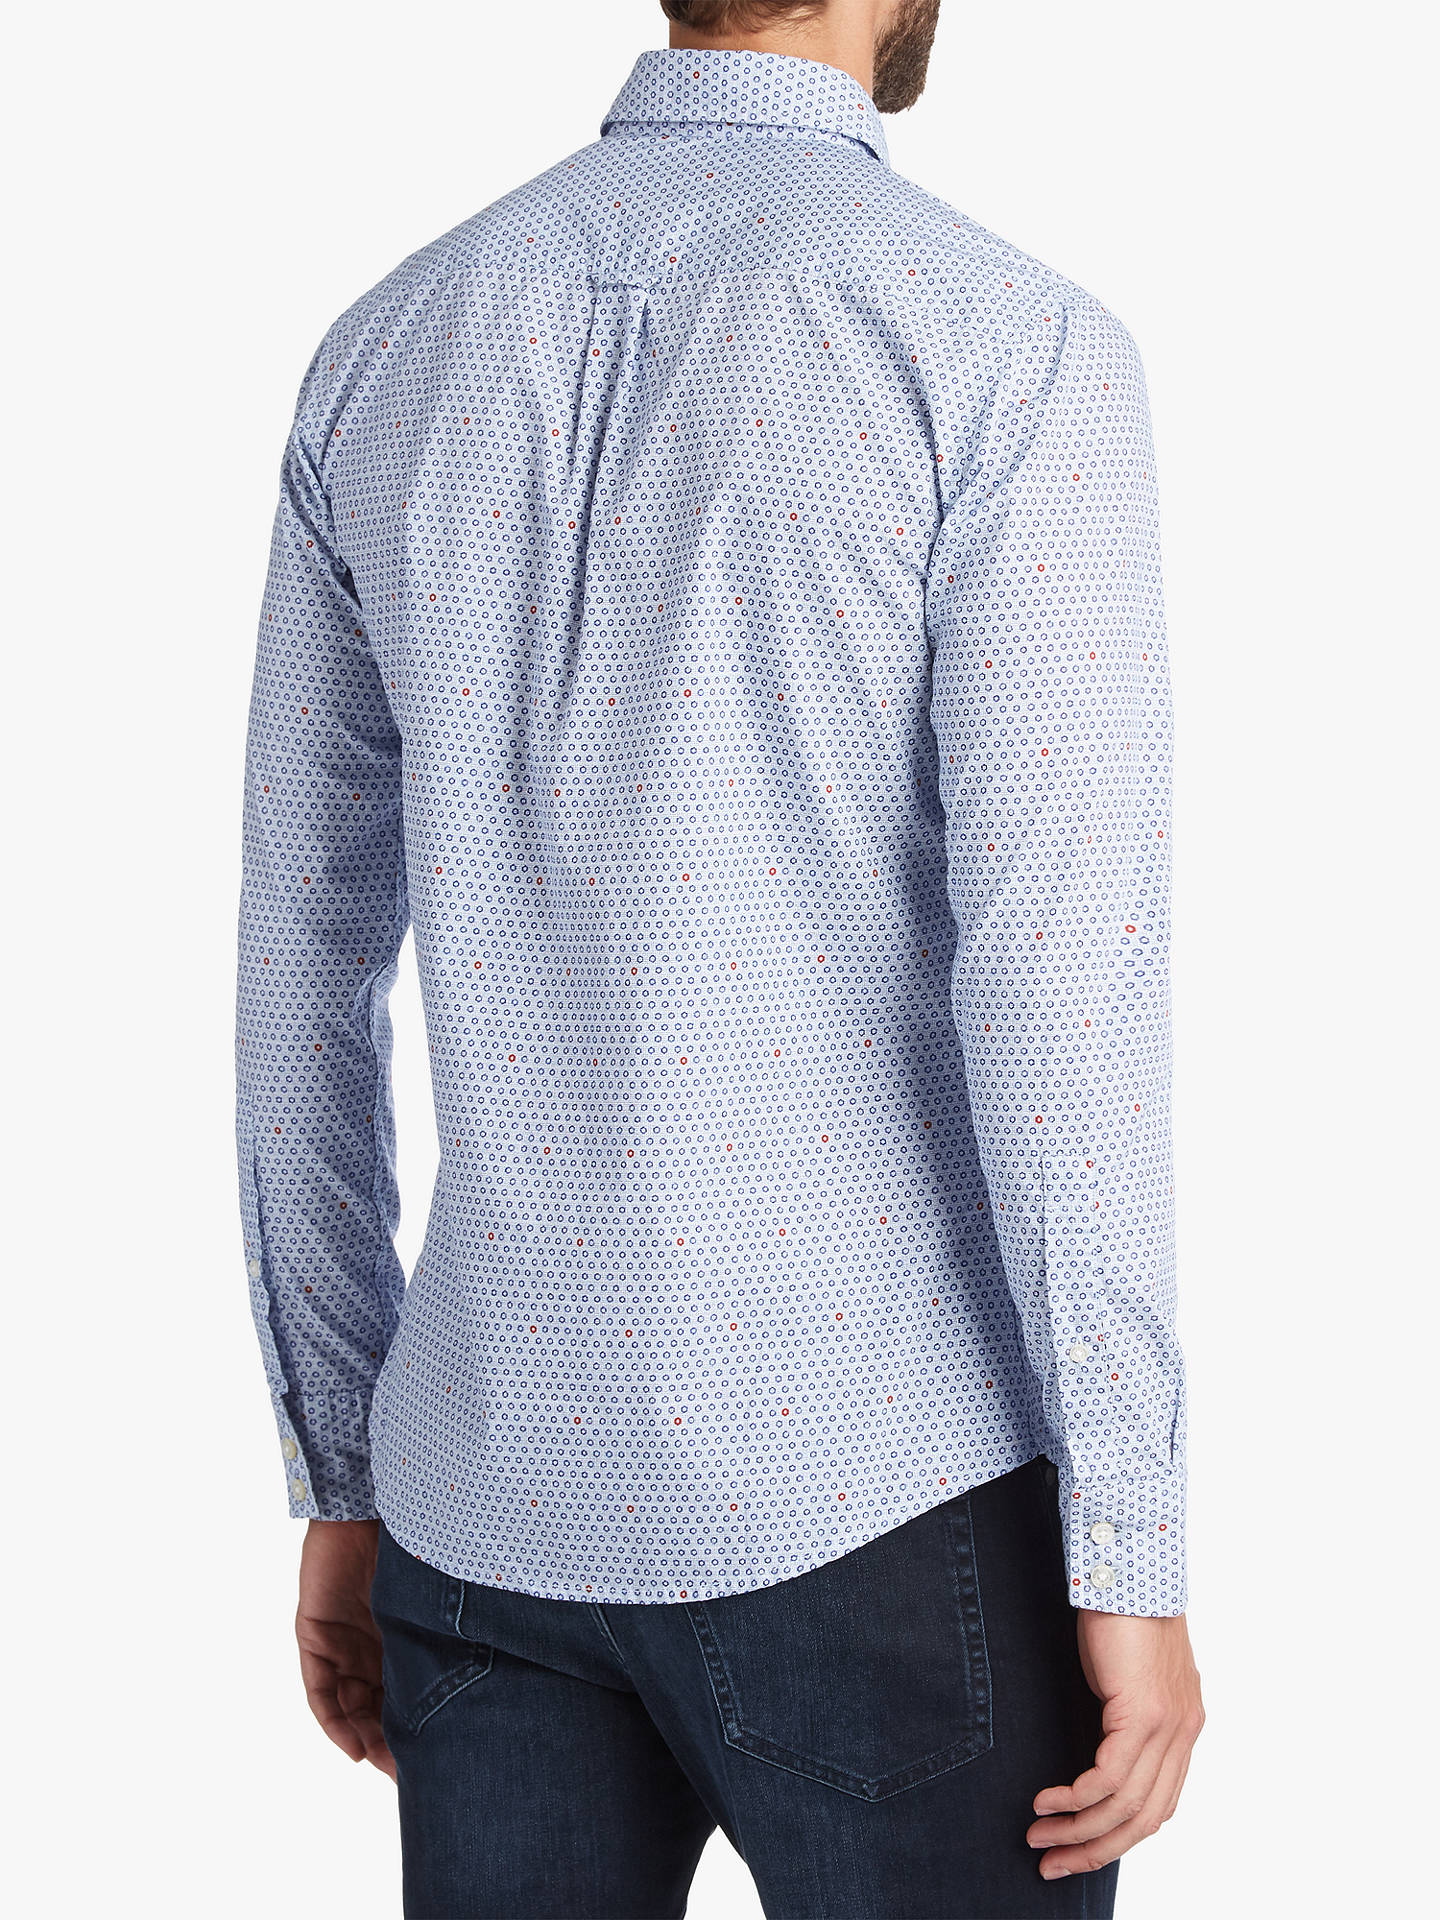 BuyBOSS Mabsoot Long Sleeve Pattern Shirt, Dark Blue, M Online at johnlewis.com